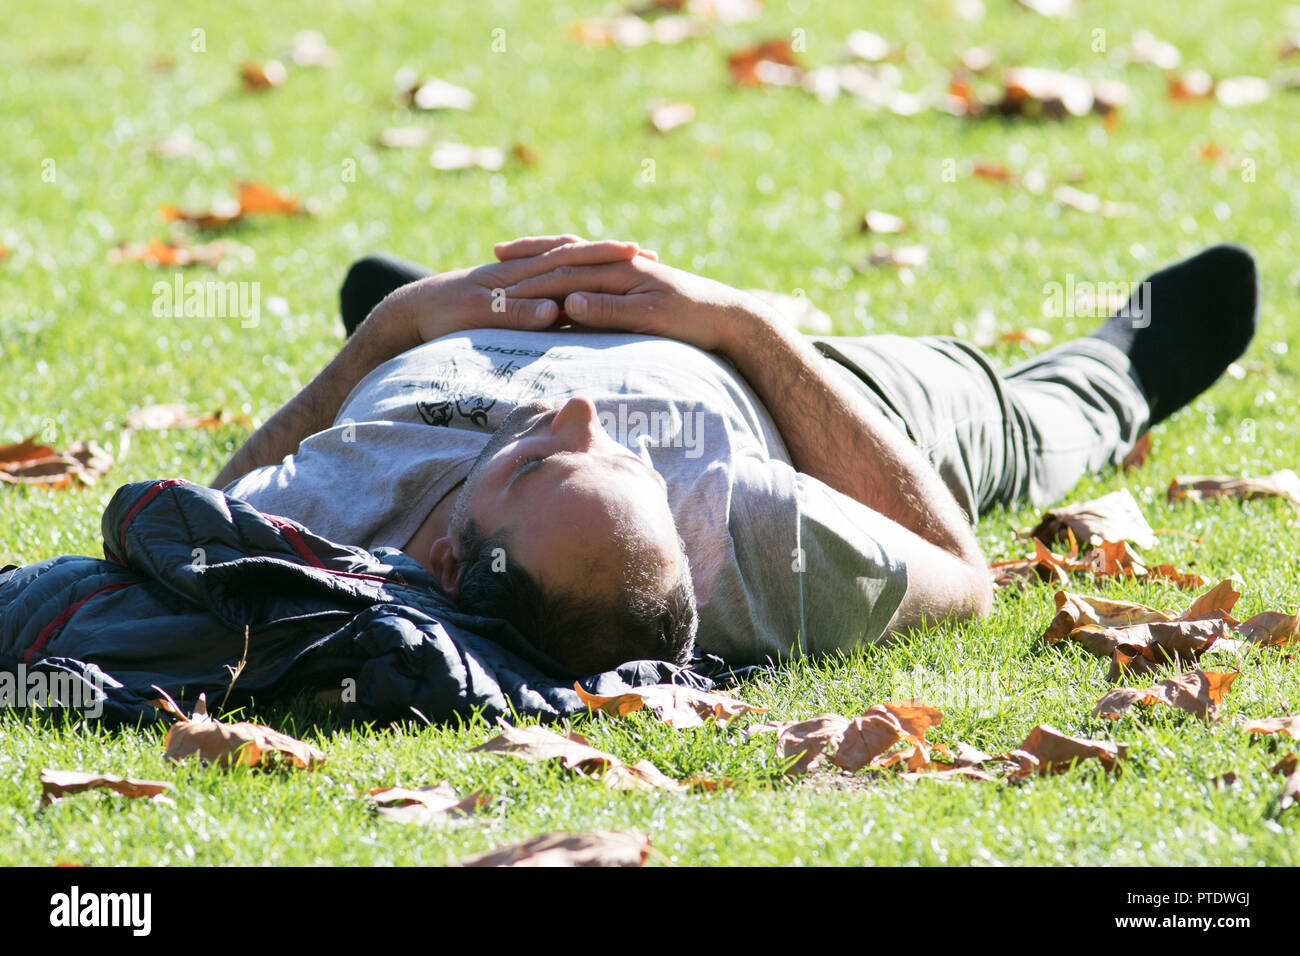 London UK. 9th Ocrober 2018. A man enjoying an nap in  the afternoon  sunshine in Saint James's Park covered in fallen leaves on a warm autumn day as October is forecast to be the hottest month in Seven years as the Indian summer returns Credit: amer ghazzal/Alamy Live News - Stock Image